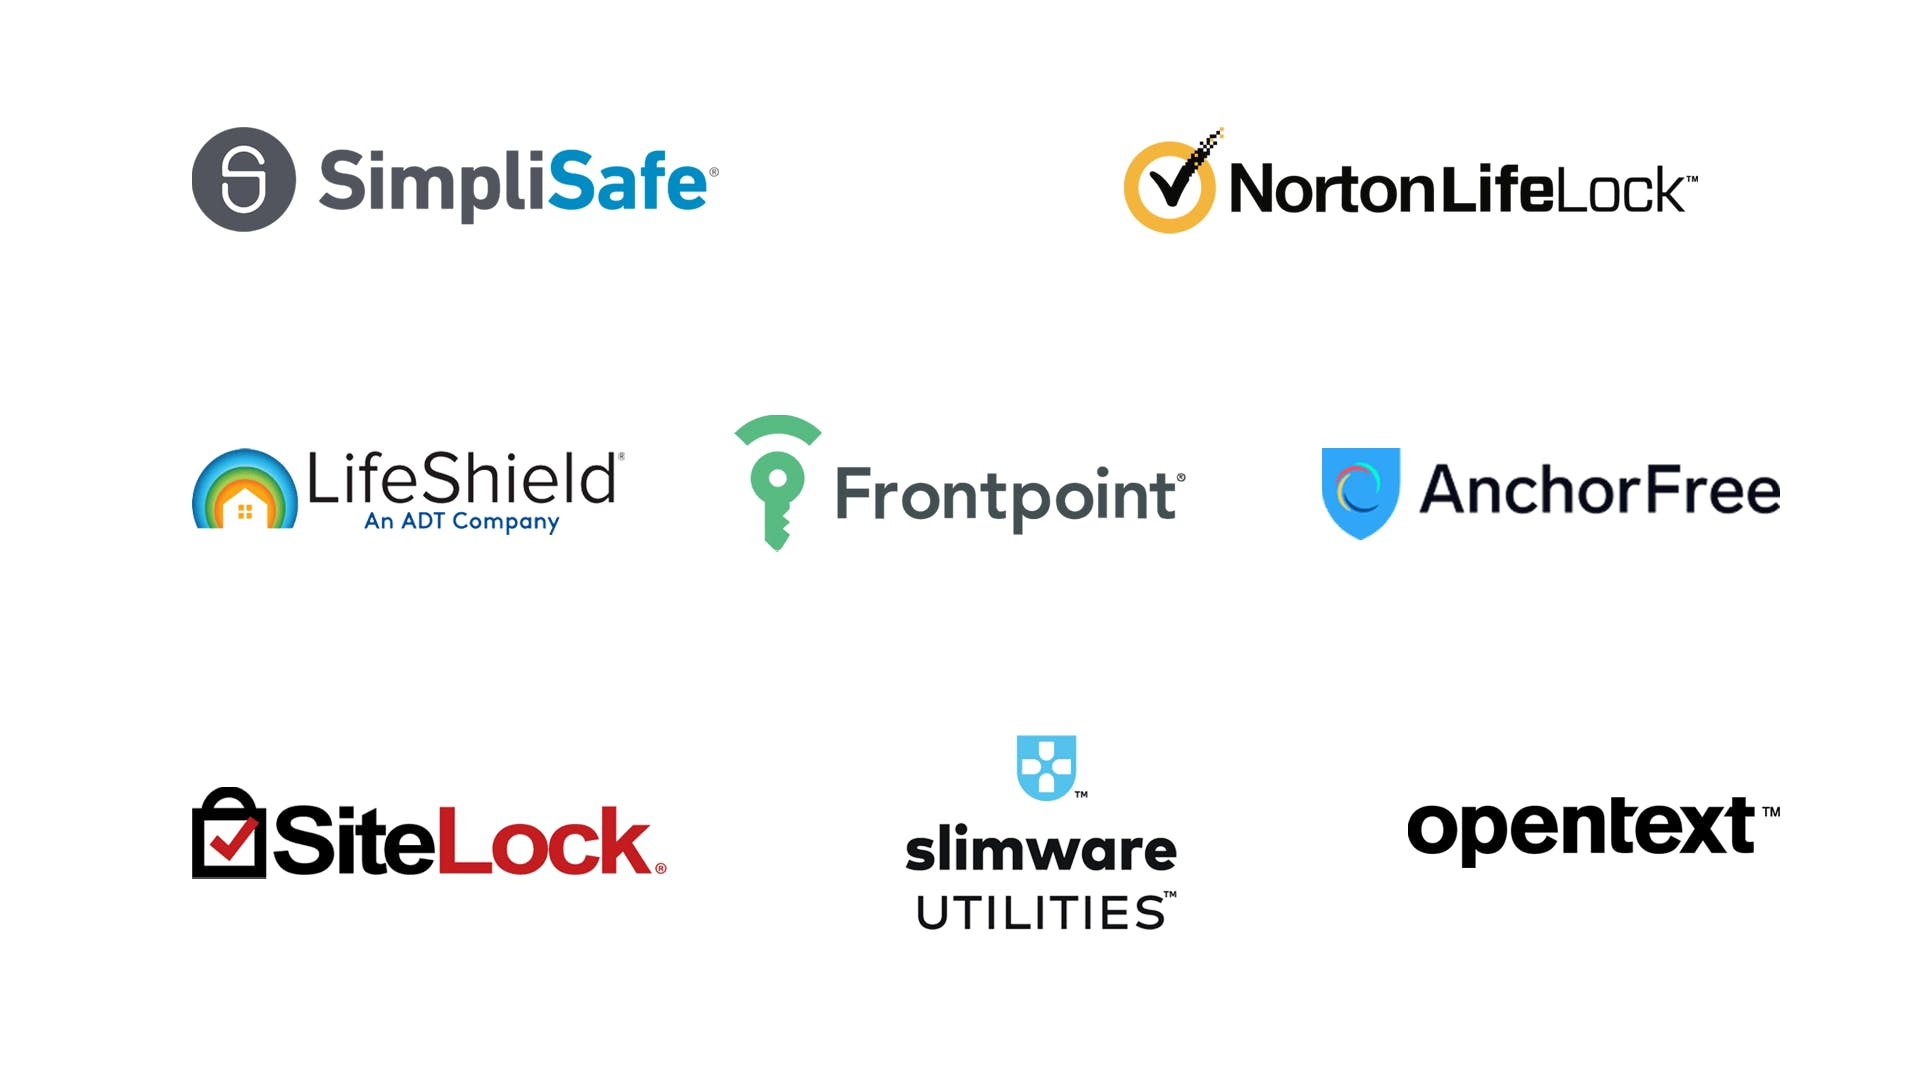 Home & Web Security Clients